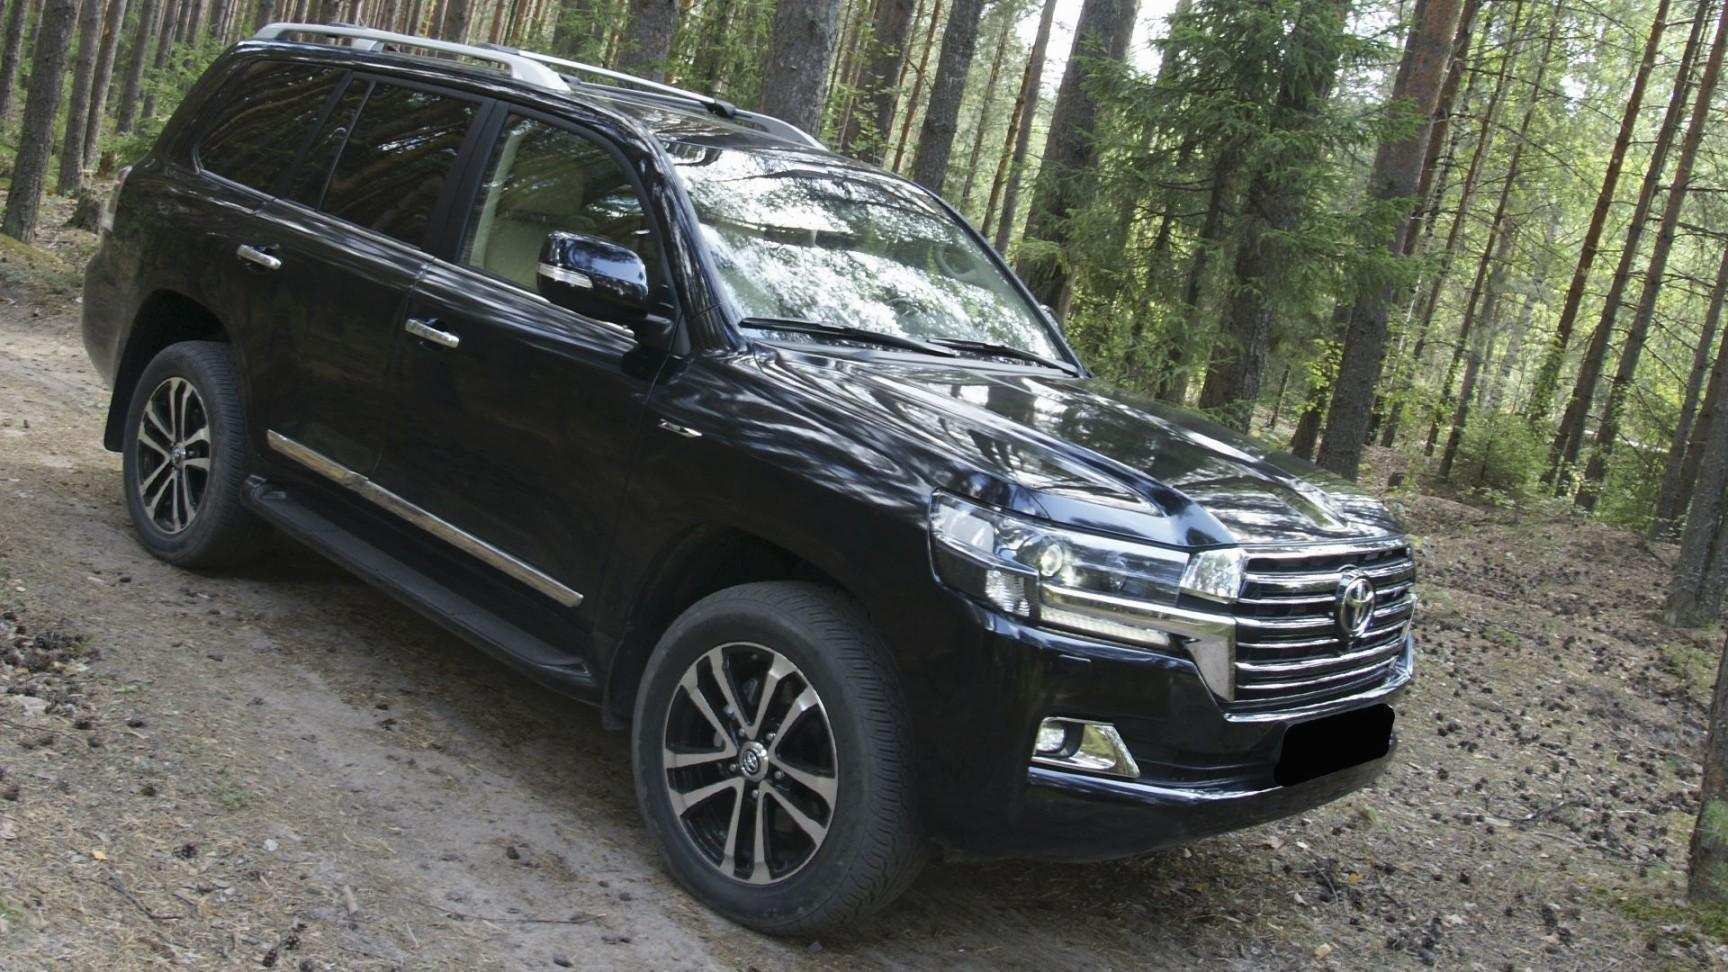 51 The Best Toyota Land Cruiser V8 2019 Photos